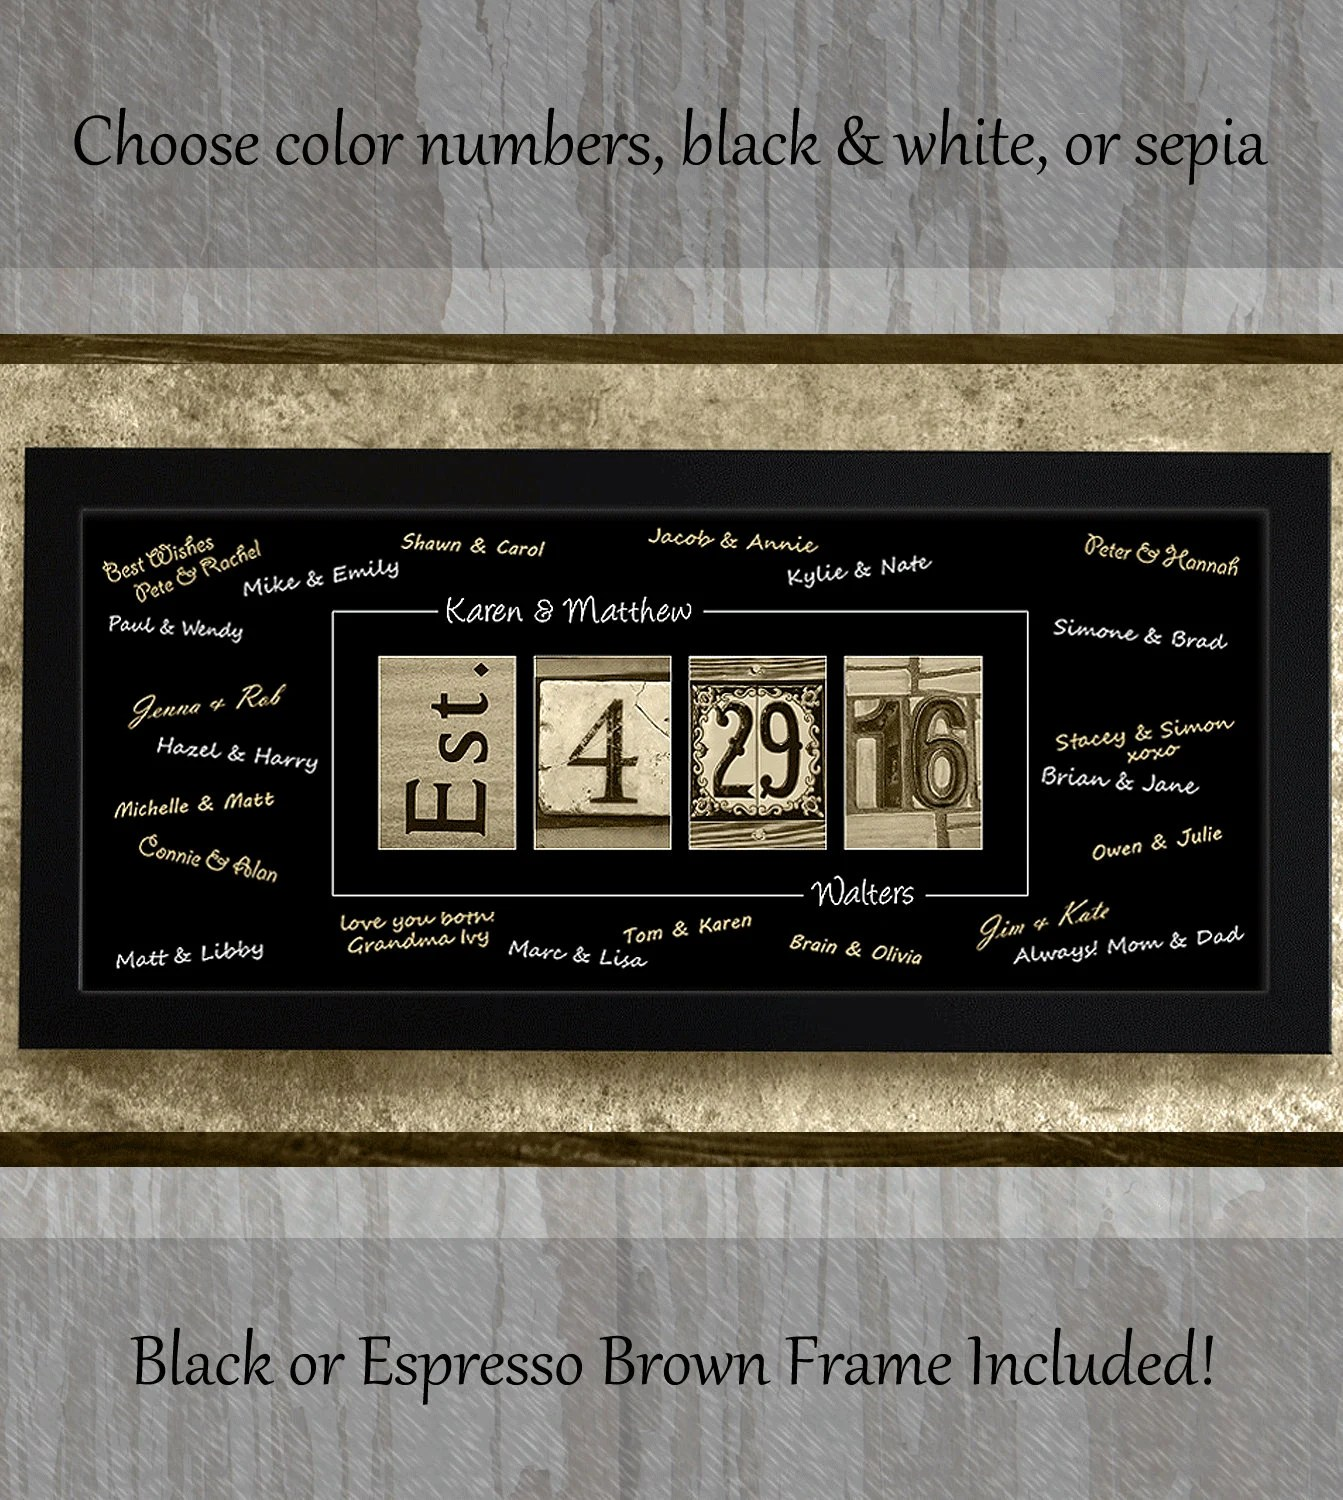 AlphabetArtPhotos - Personalized, Framed, WEDDING GUEST BOOK